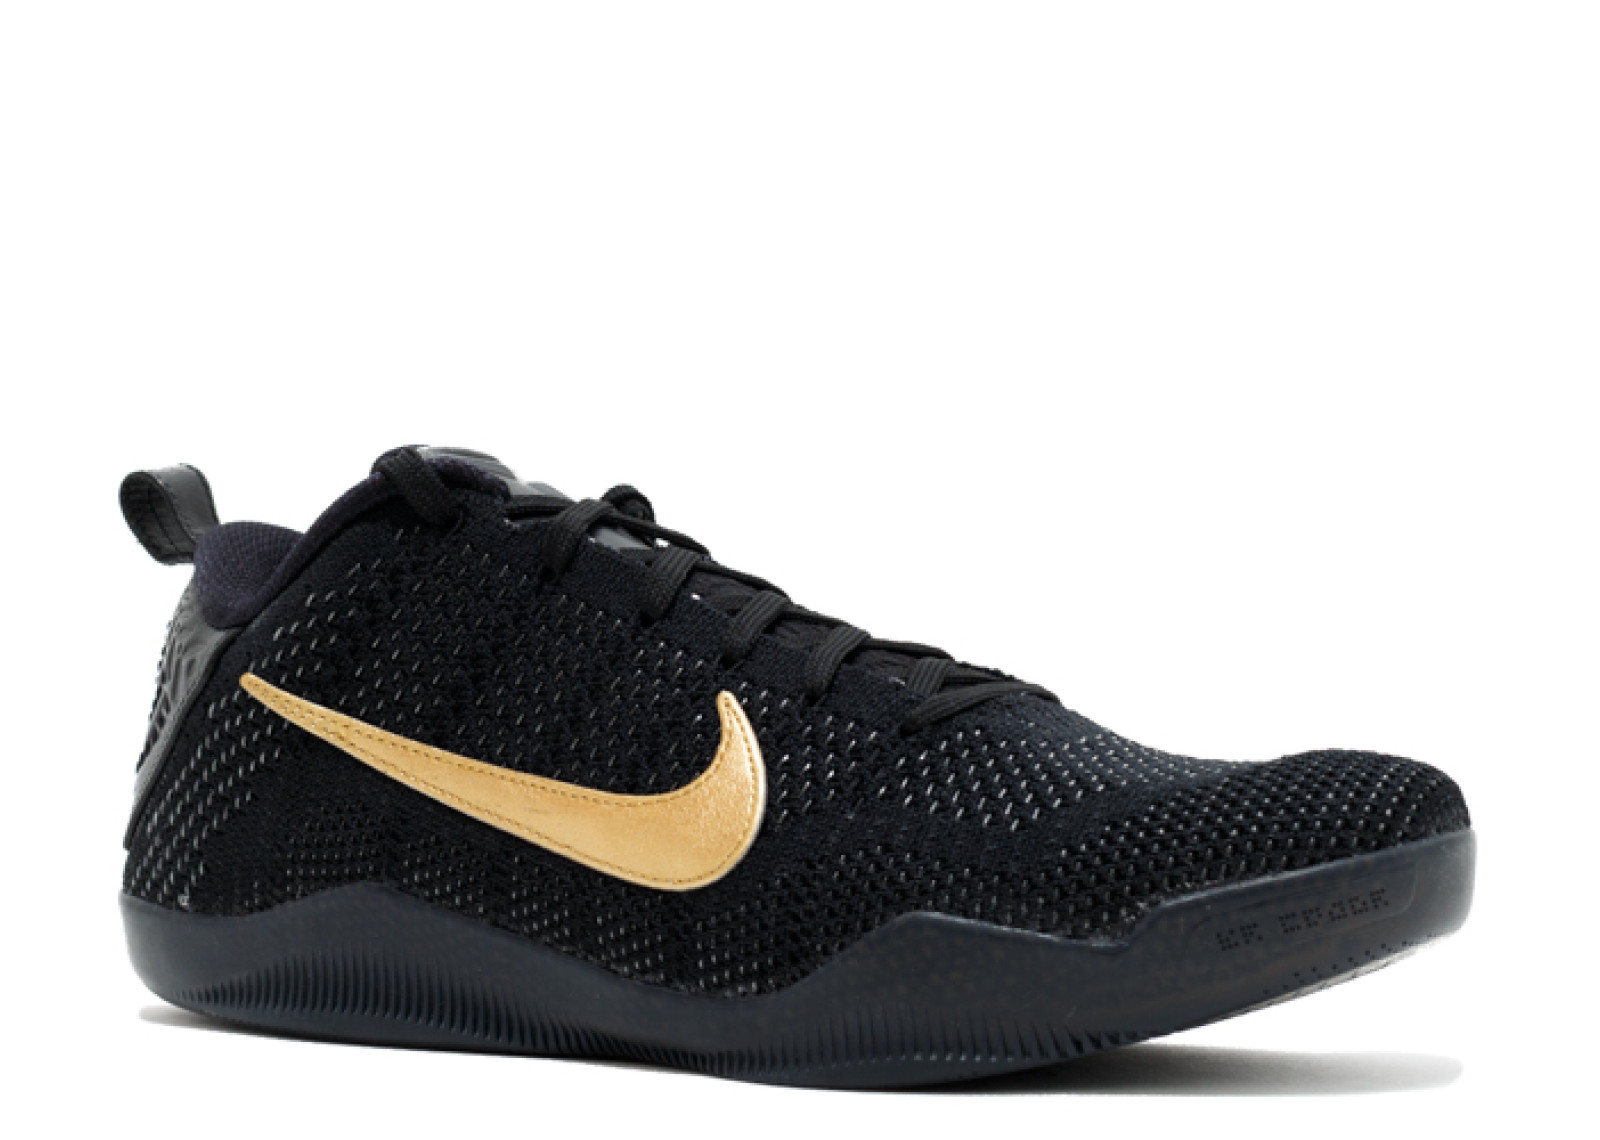 best service d905e d9906 Nike Kobe 11 Elite Low Black Mamba Collection Fade to Black - 1